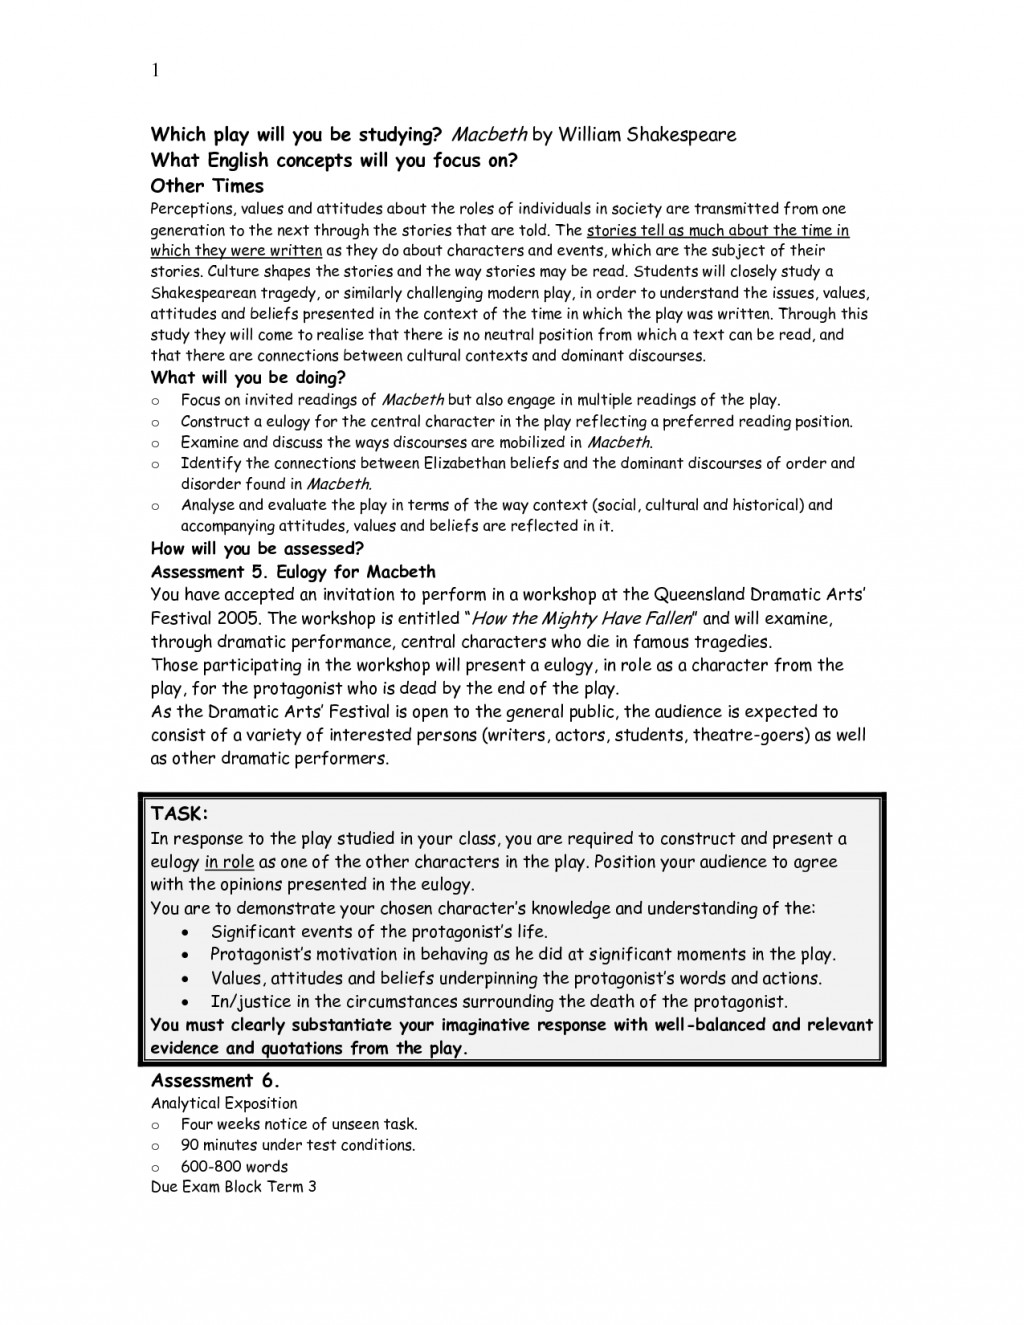 016 Essay Example Best Photos Of Art Appreciation Diabetes Research Paper Formal Macbeth Outline L Marvelous On And Lady Macbeth's Relationship Literary As A Tragic Hero Plan Large